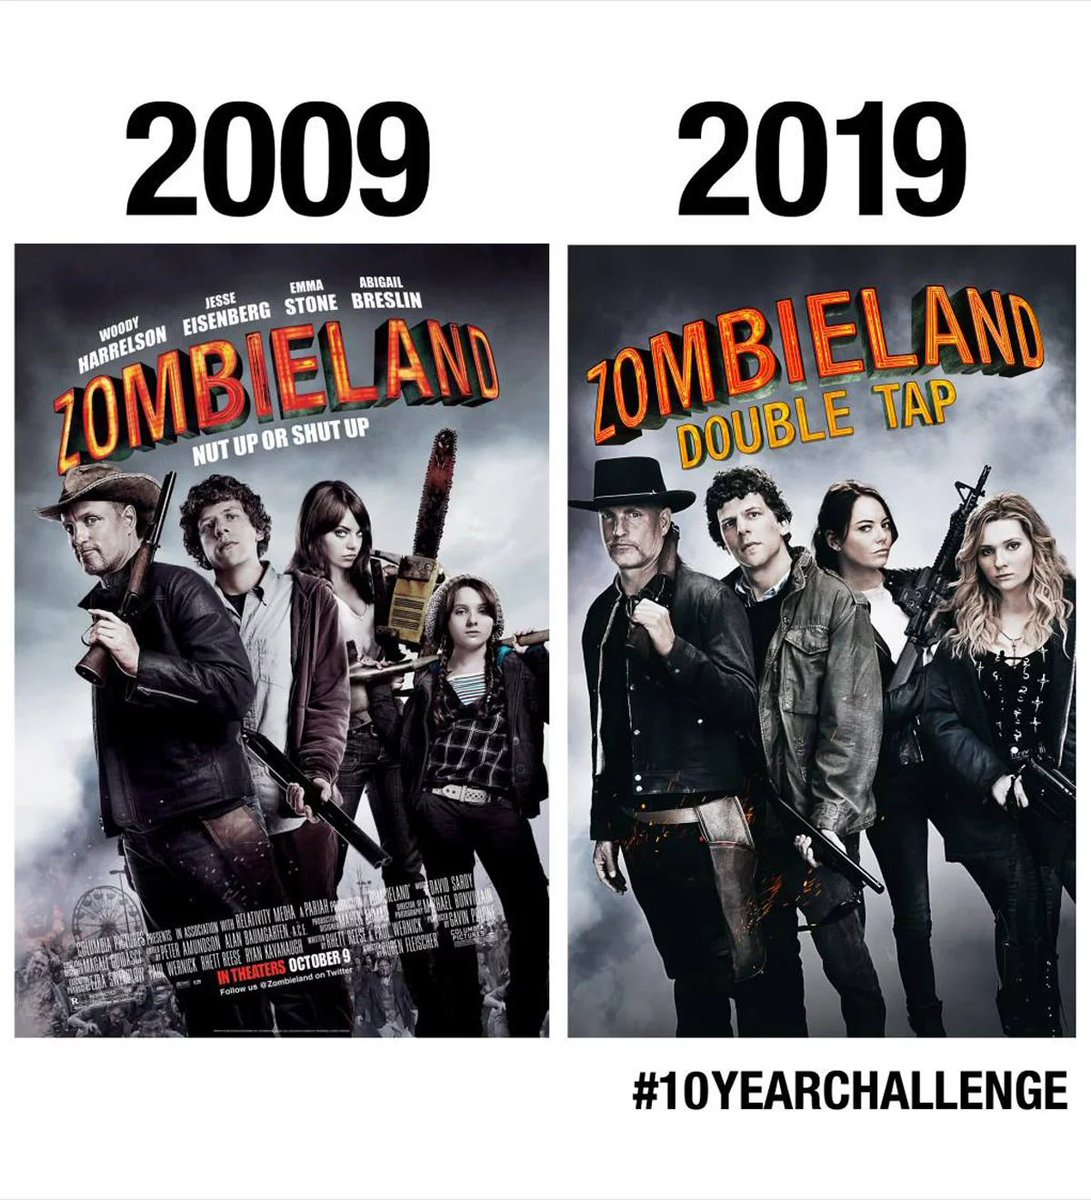 Zombieland 2 Poster & Movie Title Unveiled